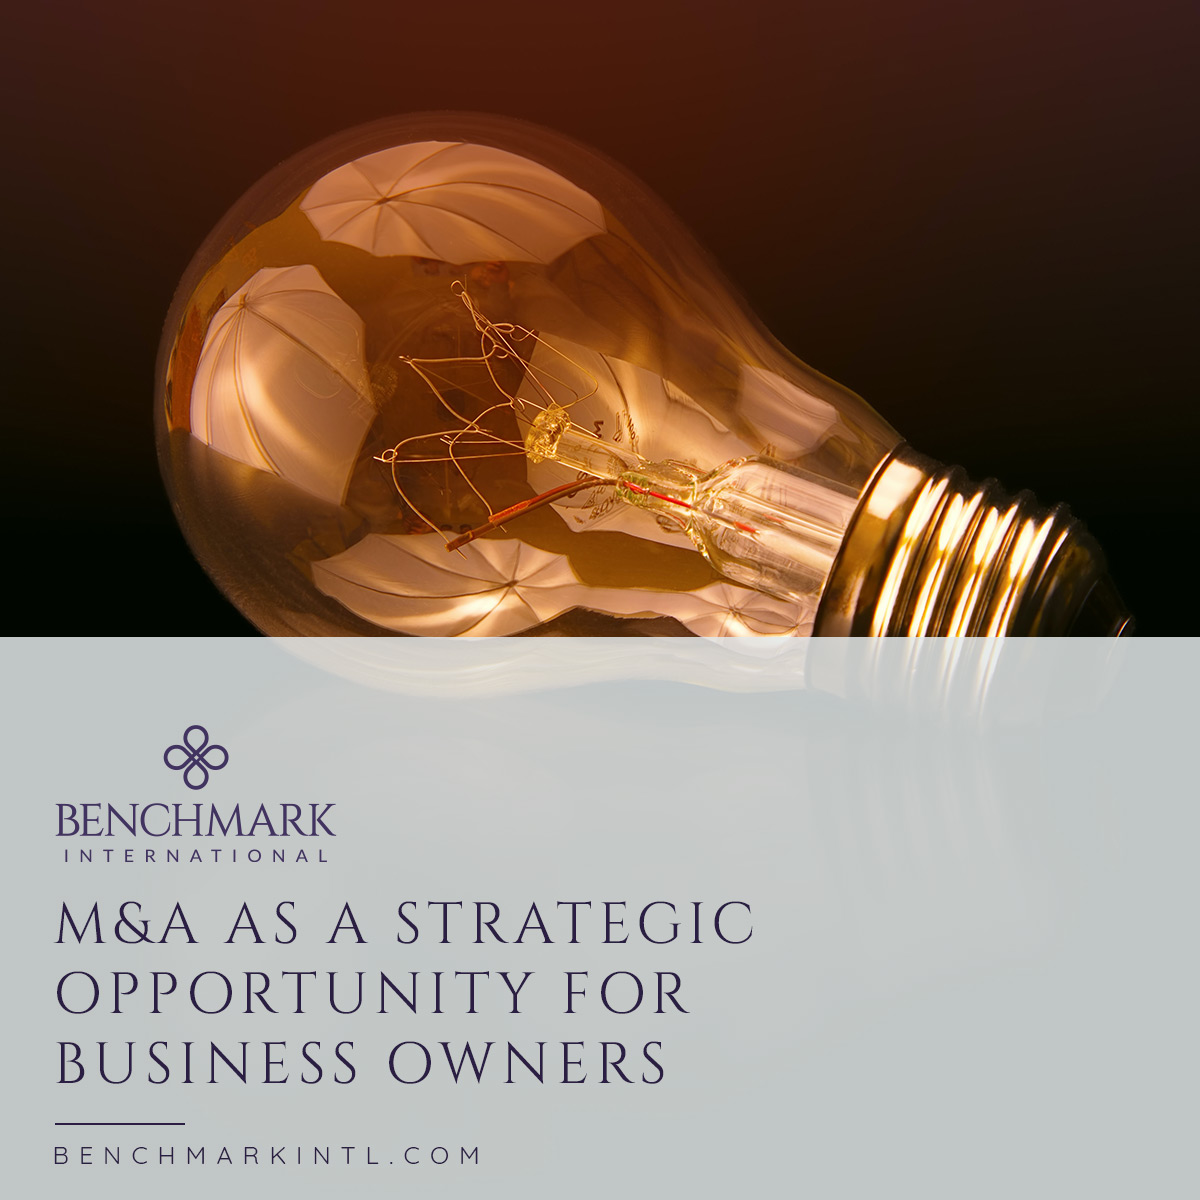 M&A_As_A_Strategic_Opportunity_For_Business_Owners_Social